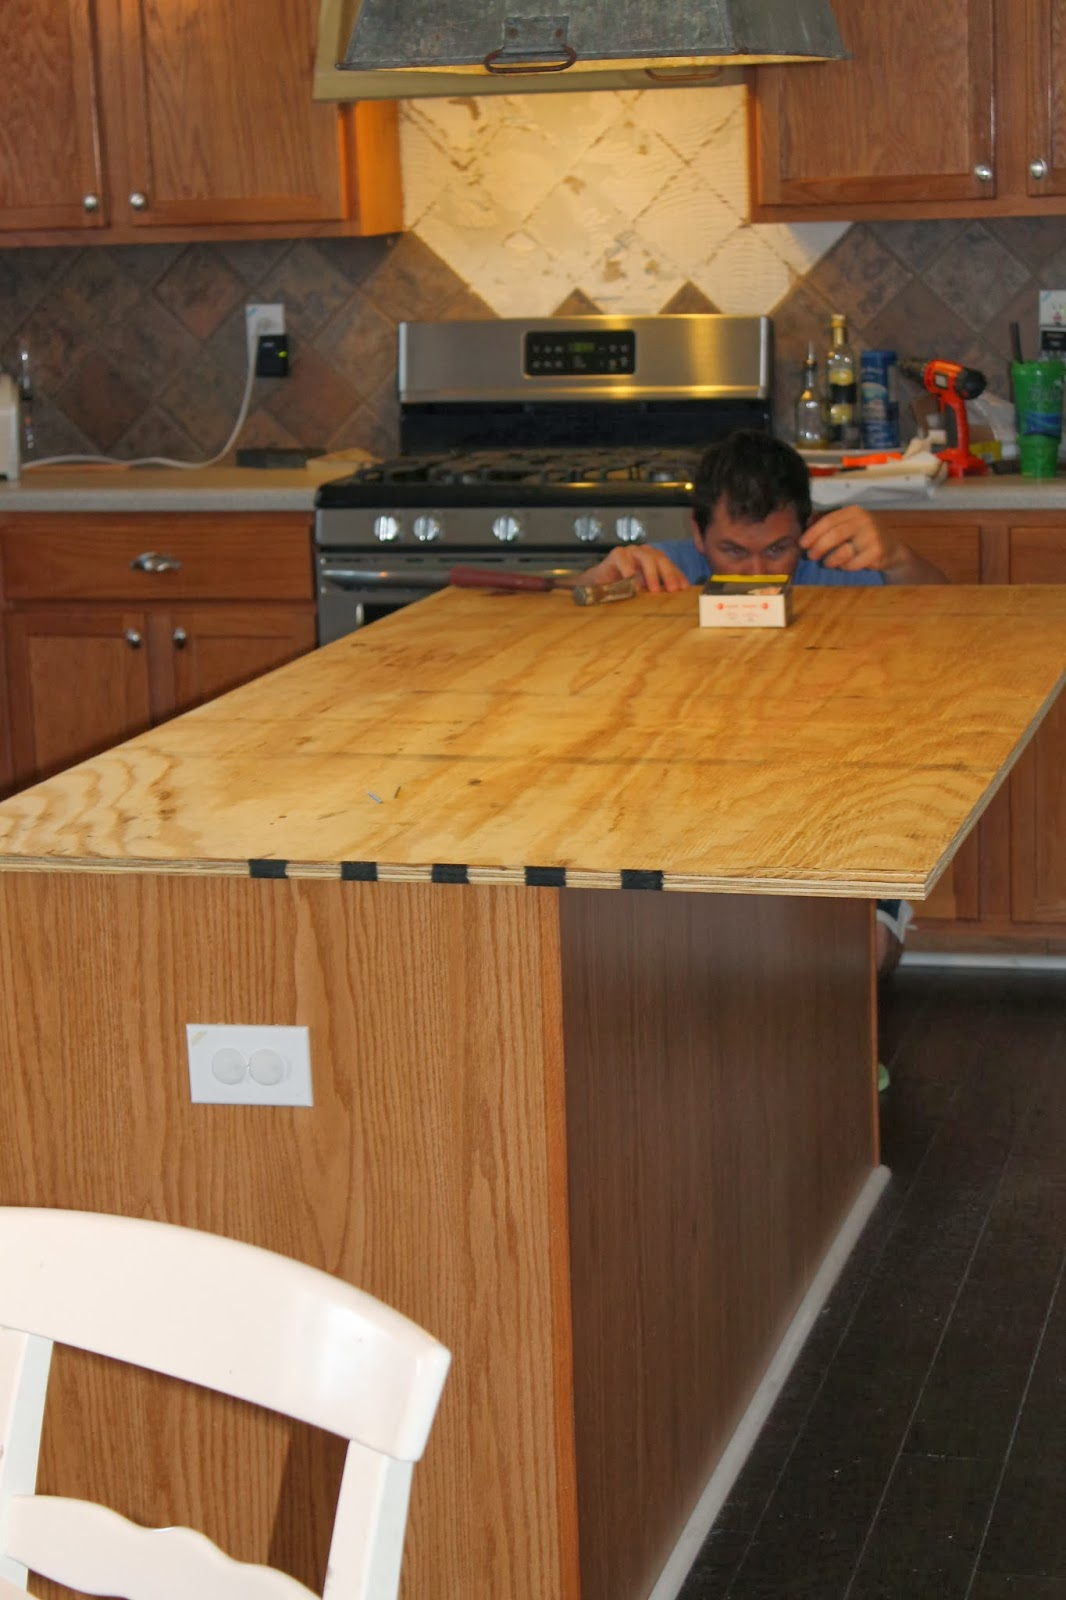 Reclaimed Wood Countertops remodelaholic | how to create faux reclaimed wood countertops